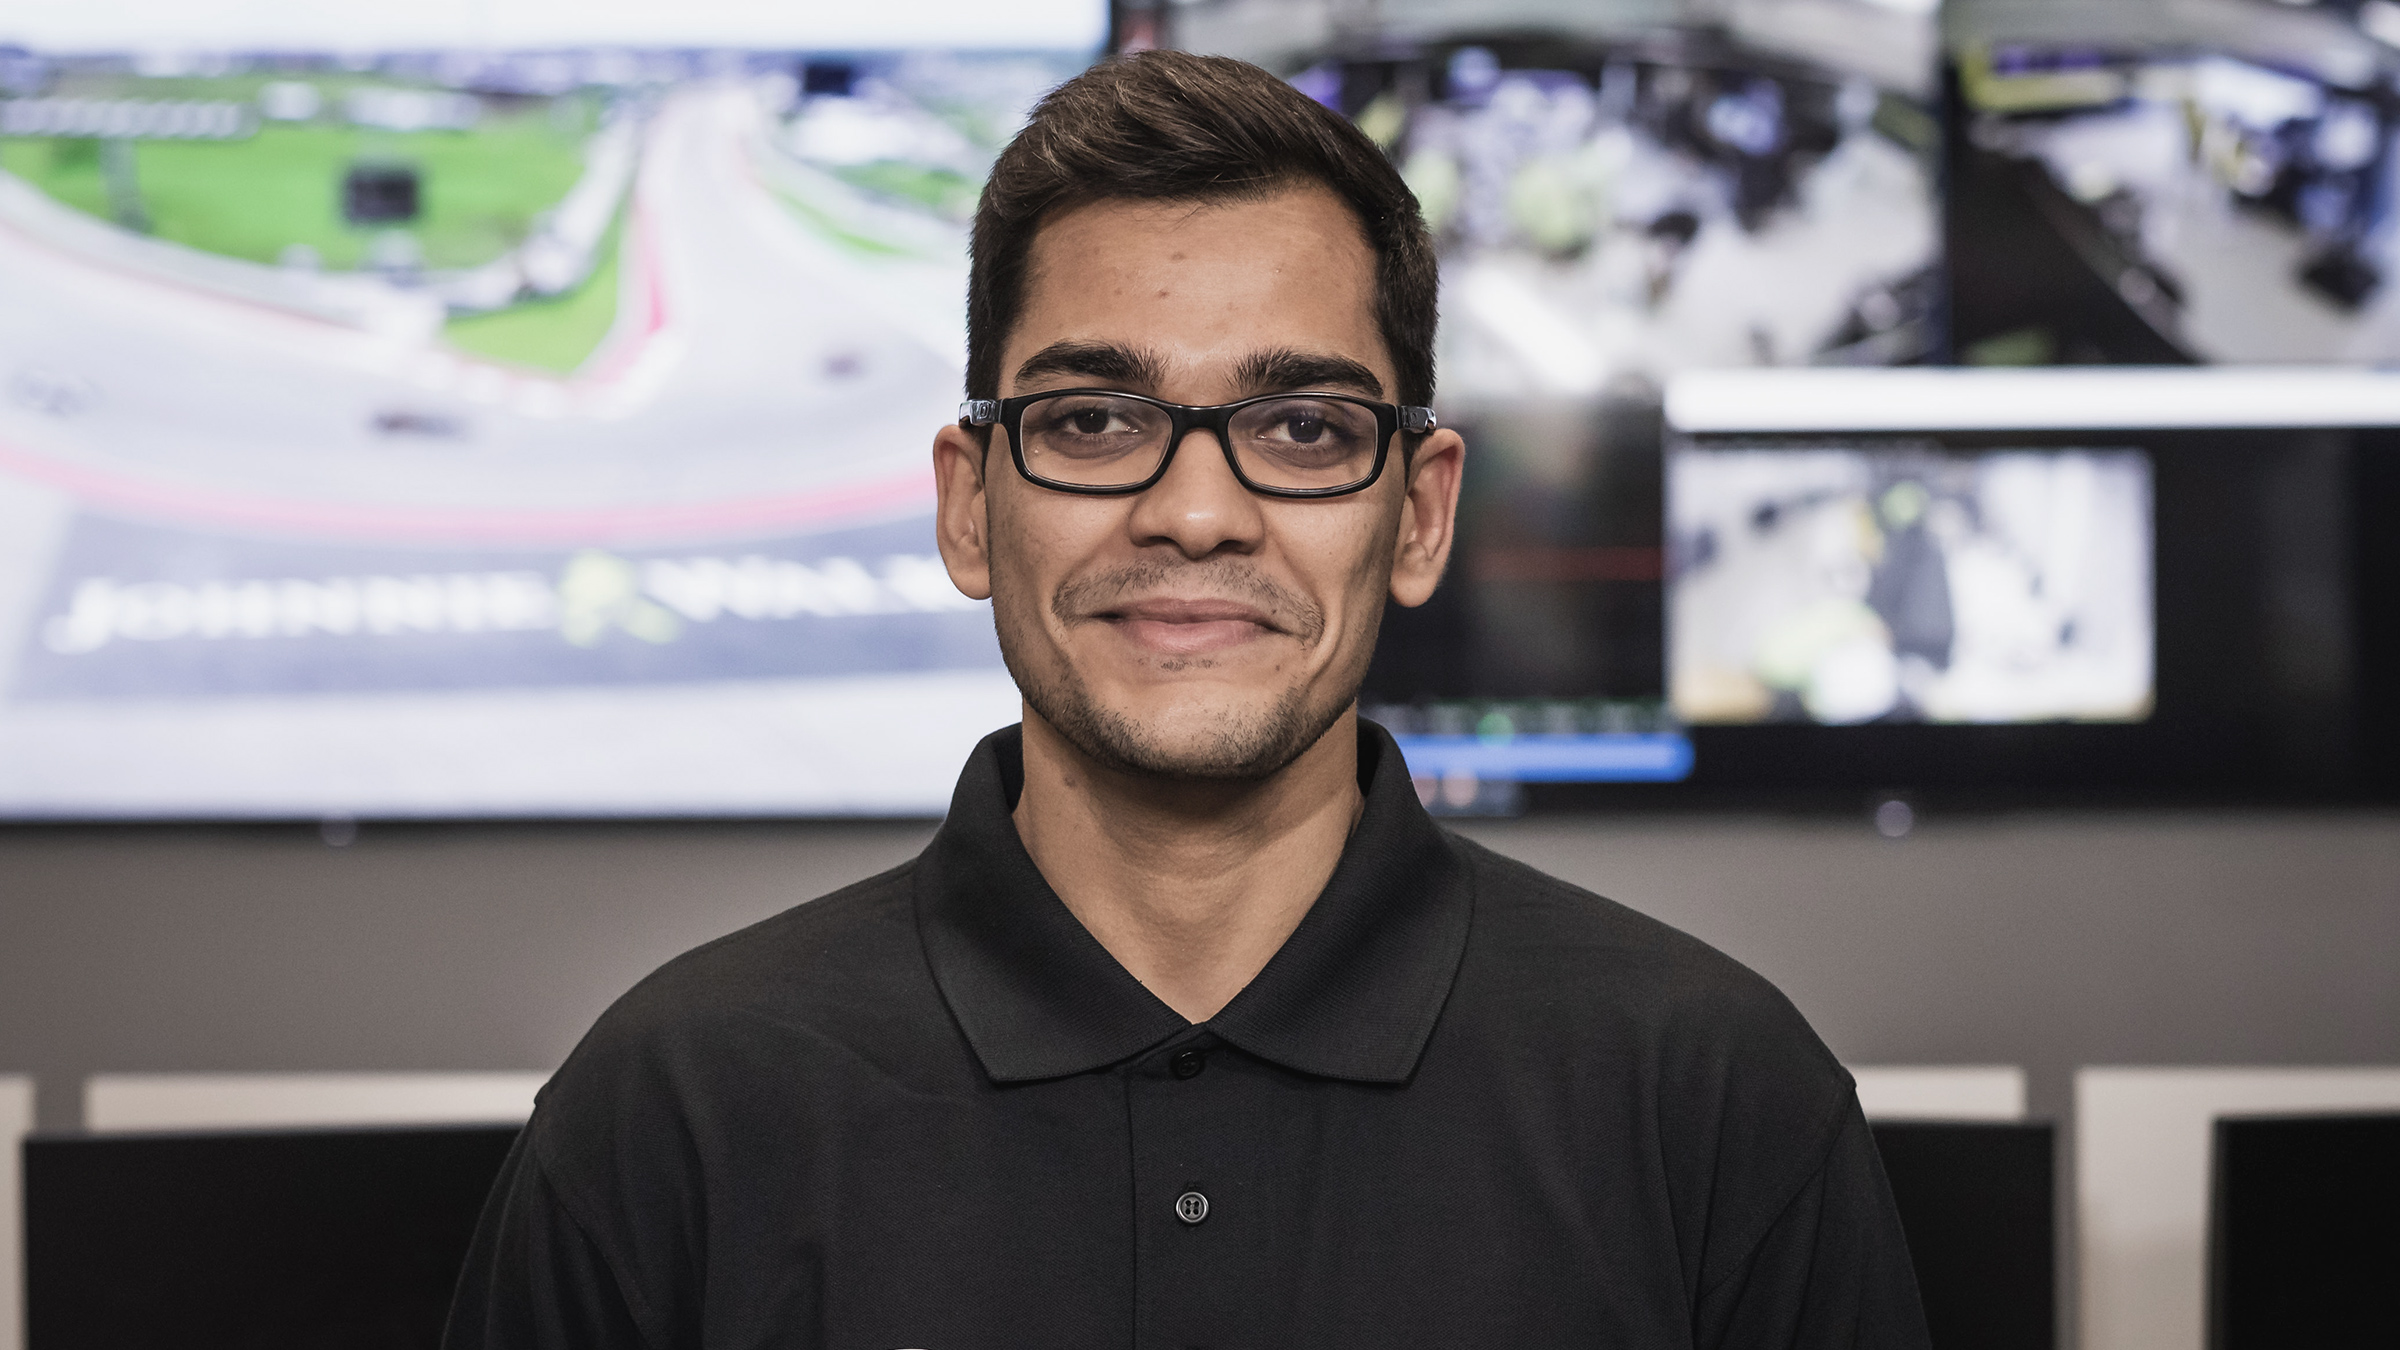 INFINITI Engineering Academy 2019 Engineer Fahim Choudhary Profile